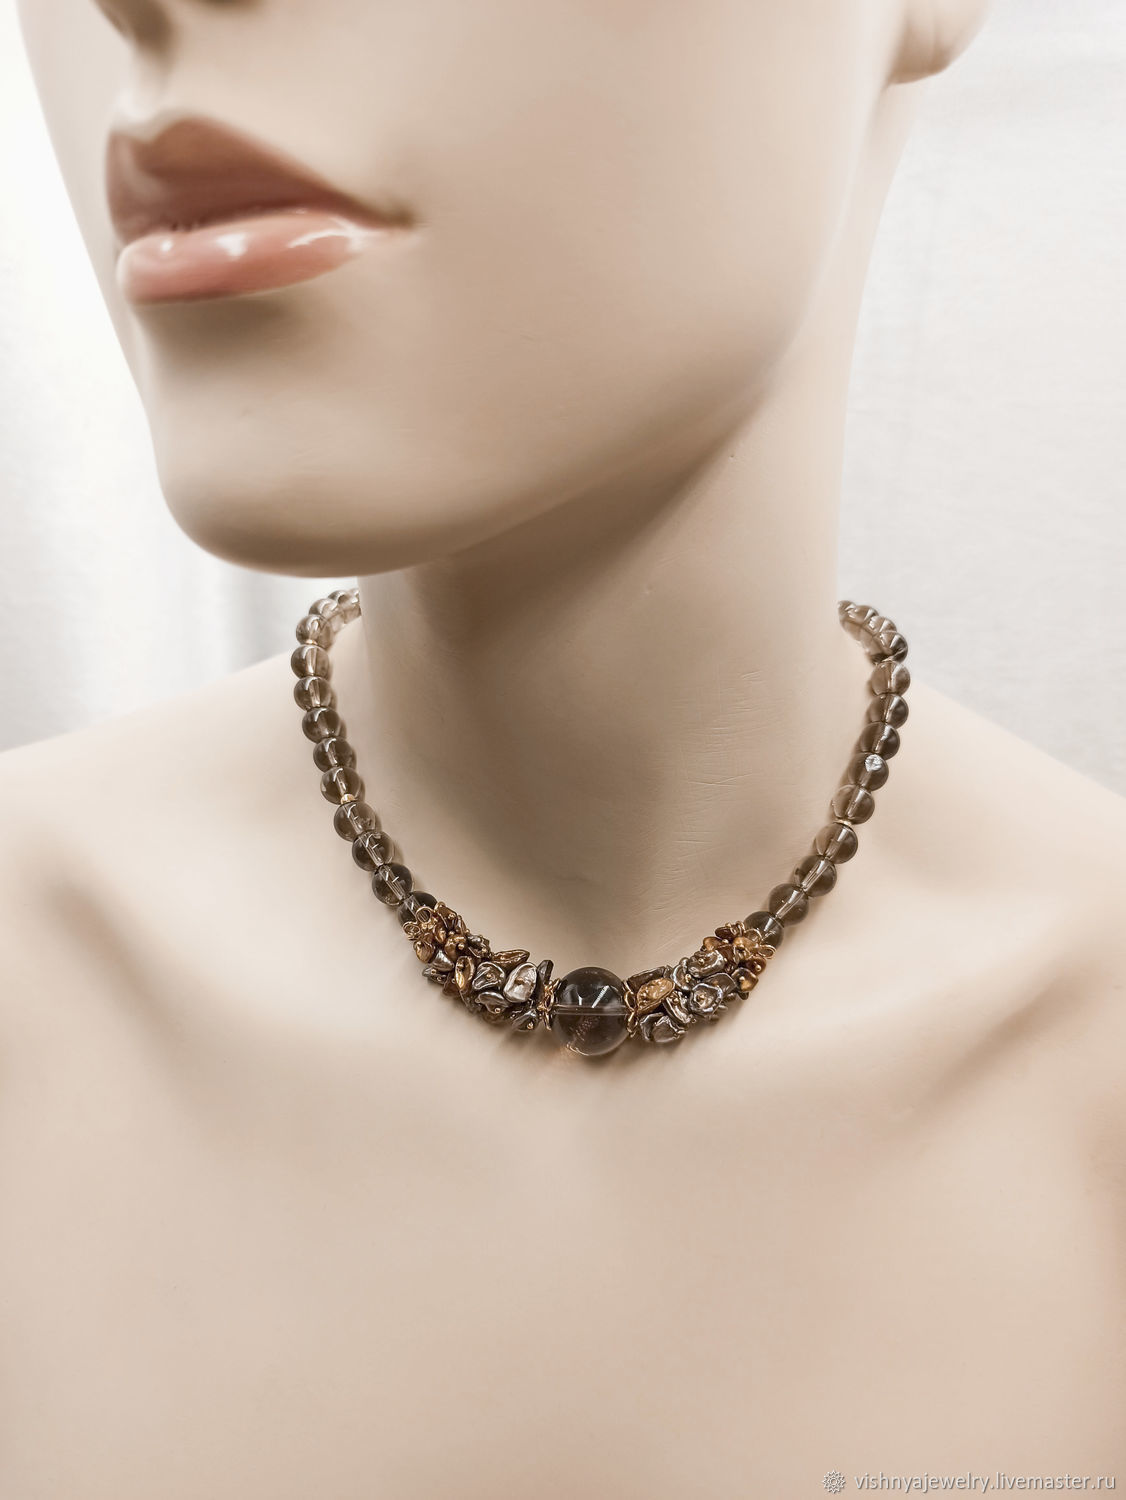 Necklace Silver GOLDEN CHESTNUT Rauchtopaz pearls Keshi Natural stones, Necklace, Moscow,  Фото №1